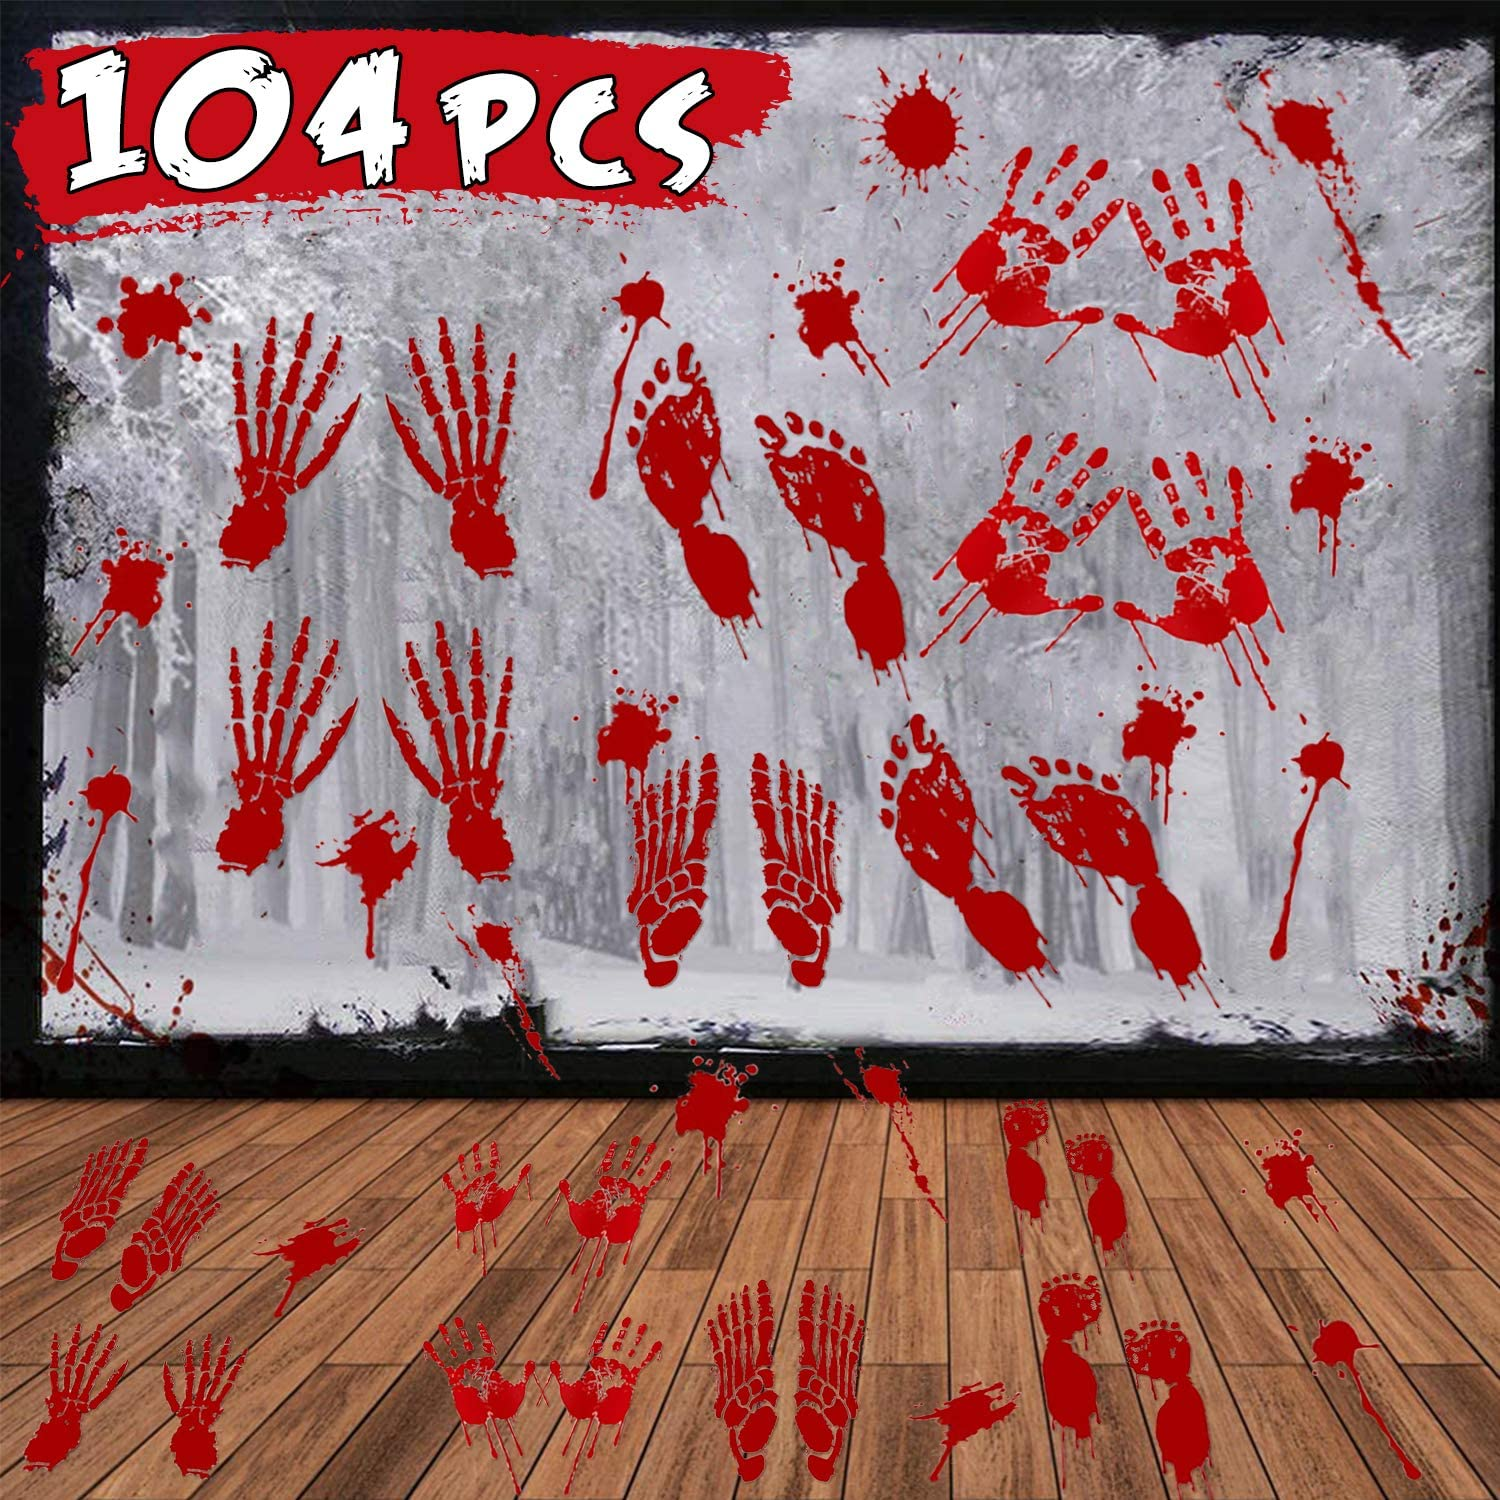 104Pcs Halloween Party Decoration Stickers Halloween Window Decals Horror Bloody Handprints Footprints Floor Stickers Vampire Zombie Party Decorations Supplies Scary Decals 8 Sheet (25x35 inch)